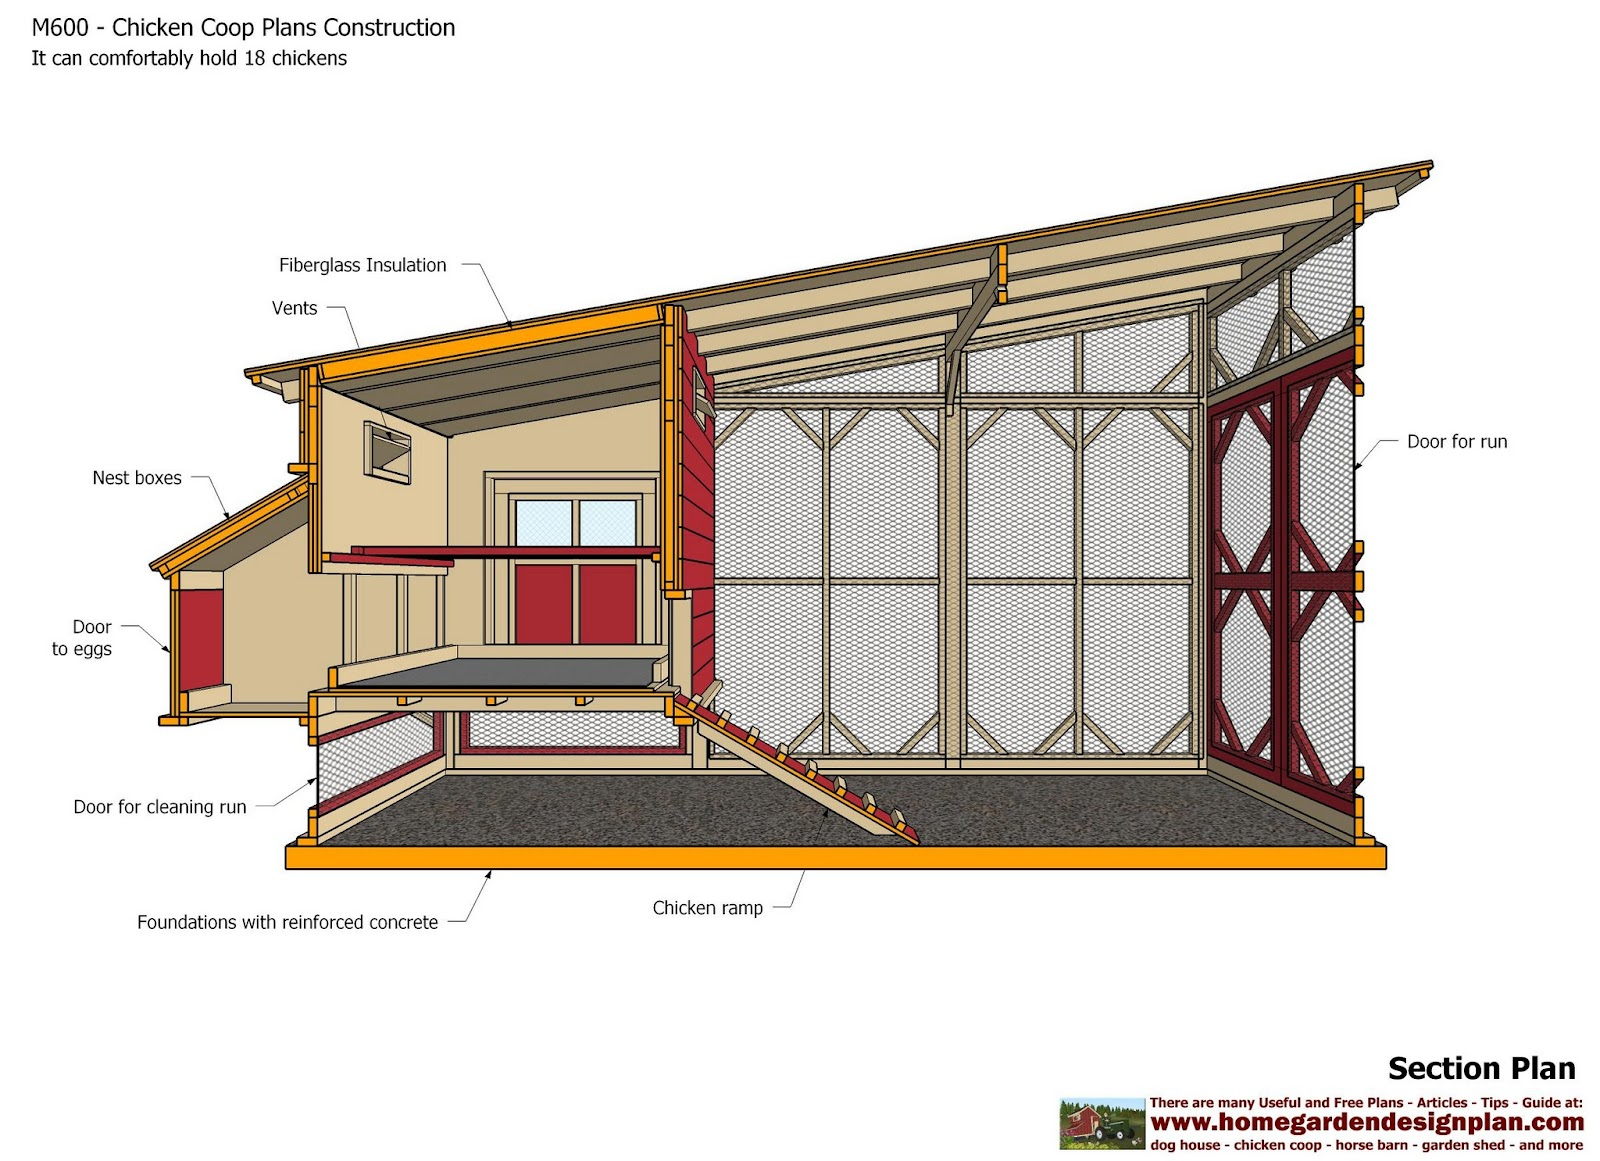 Home garden plans m600 chicken coop plans construction for Small chicken coop blueprints free